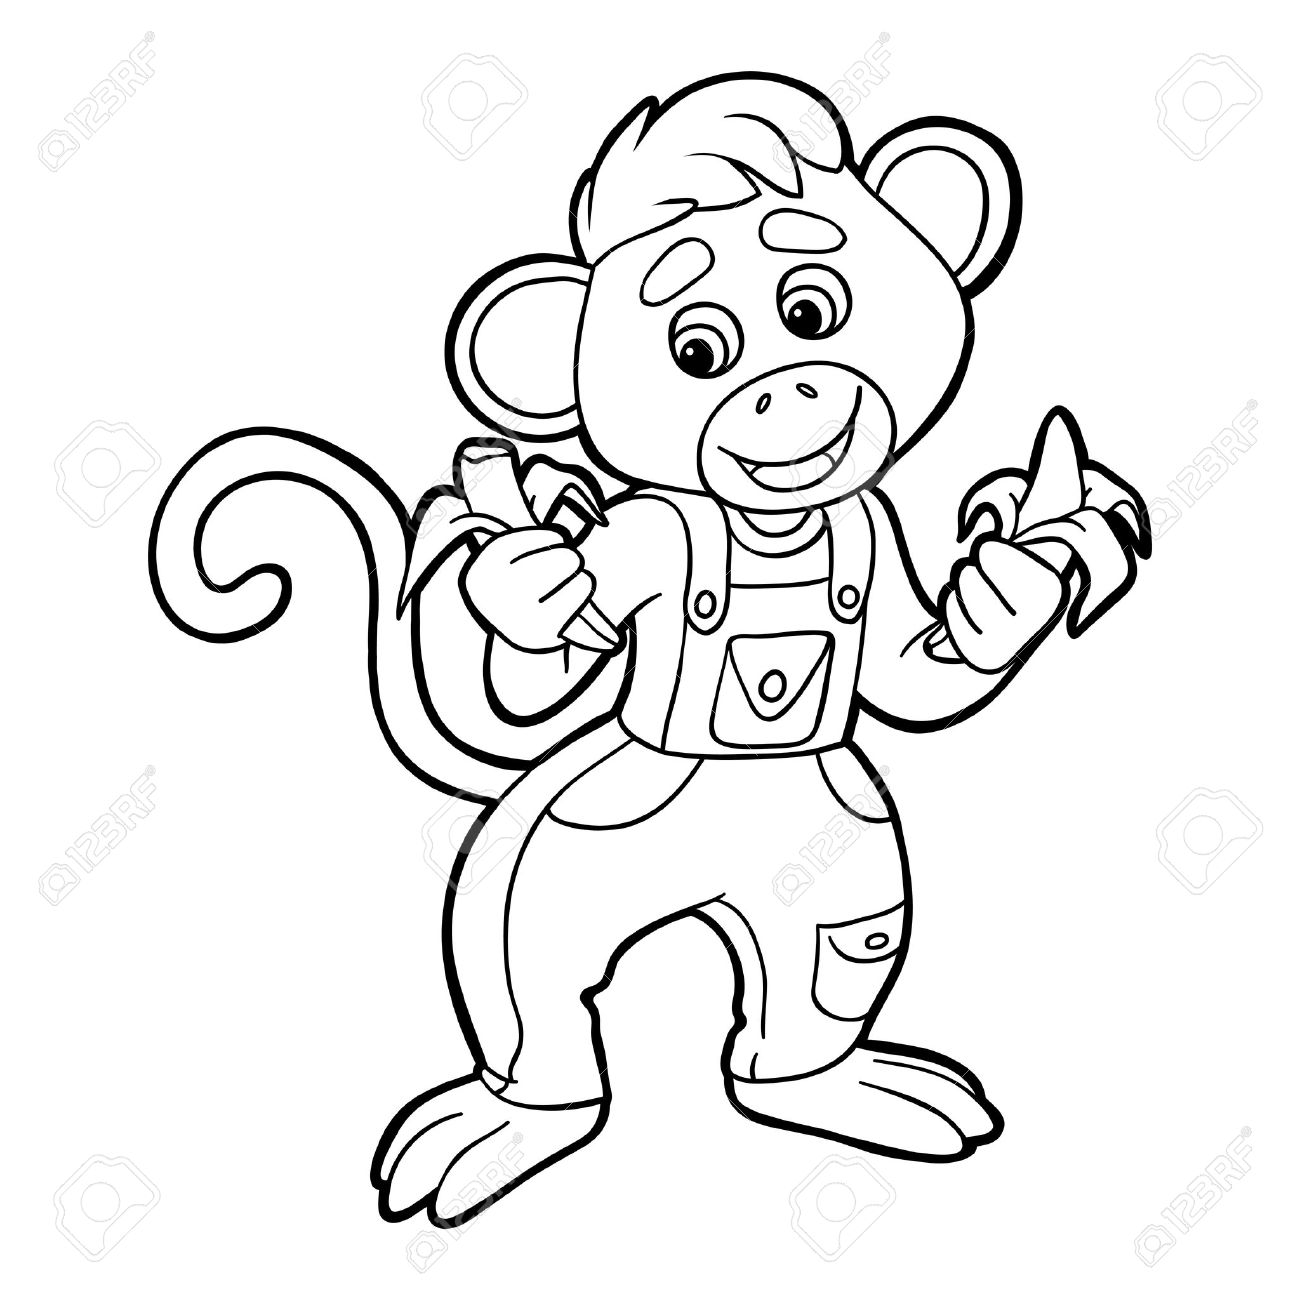 Coloring Book (monkey) Royalty Free Cliparts, Vectors, And Stock ...